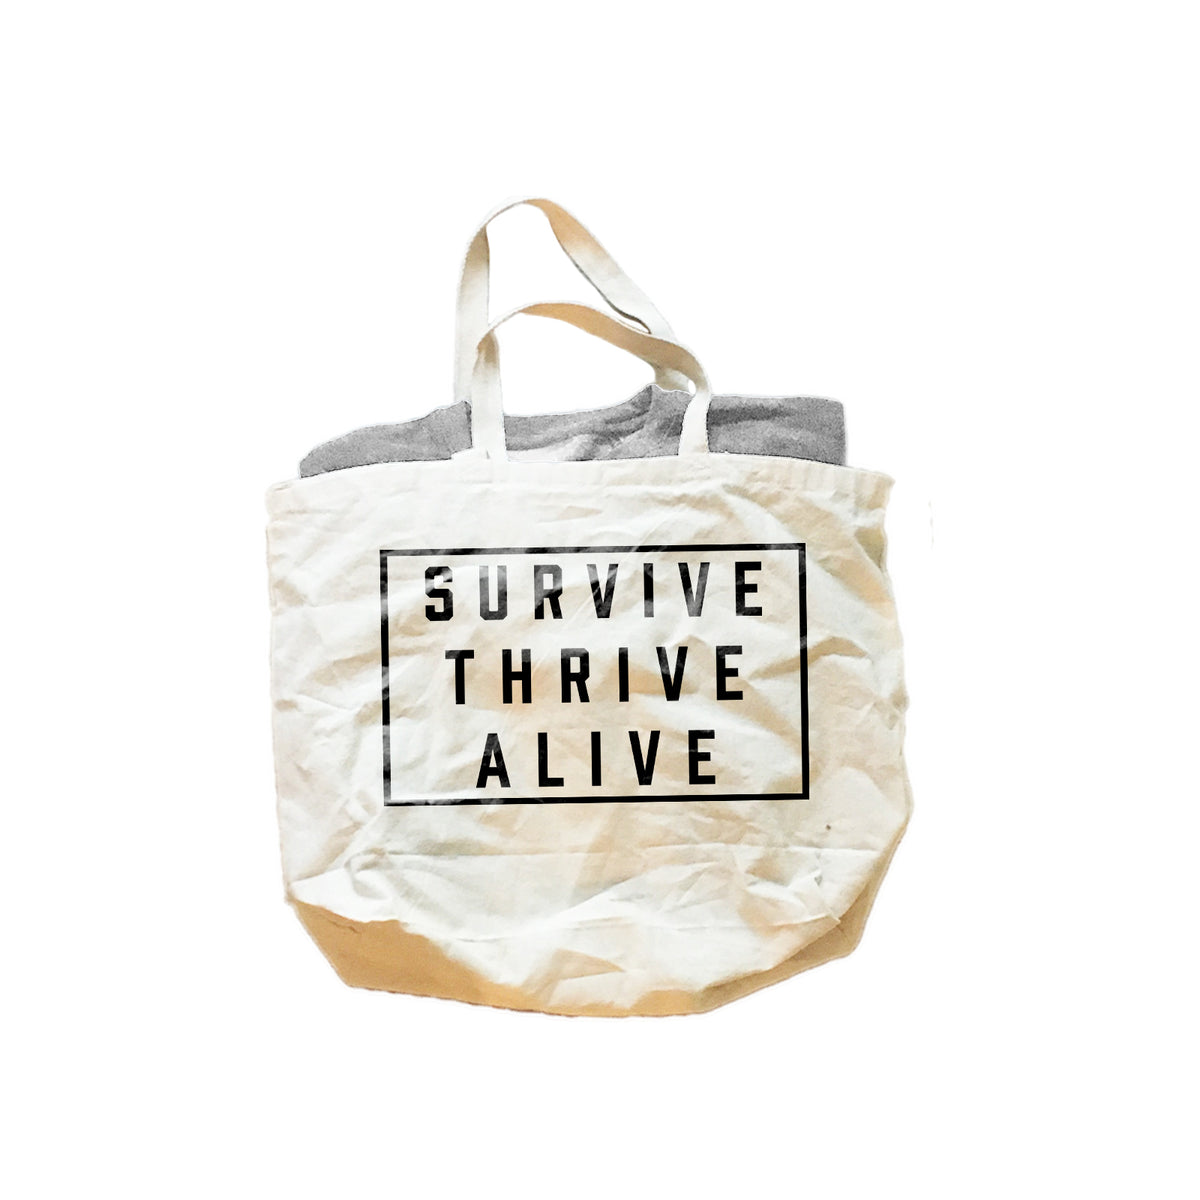 Survive Thrive Alive Block Gift Set - Unisex Crewneck Sweatshirt & Jumbo Cotton Canvas Tote